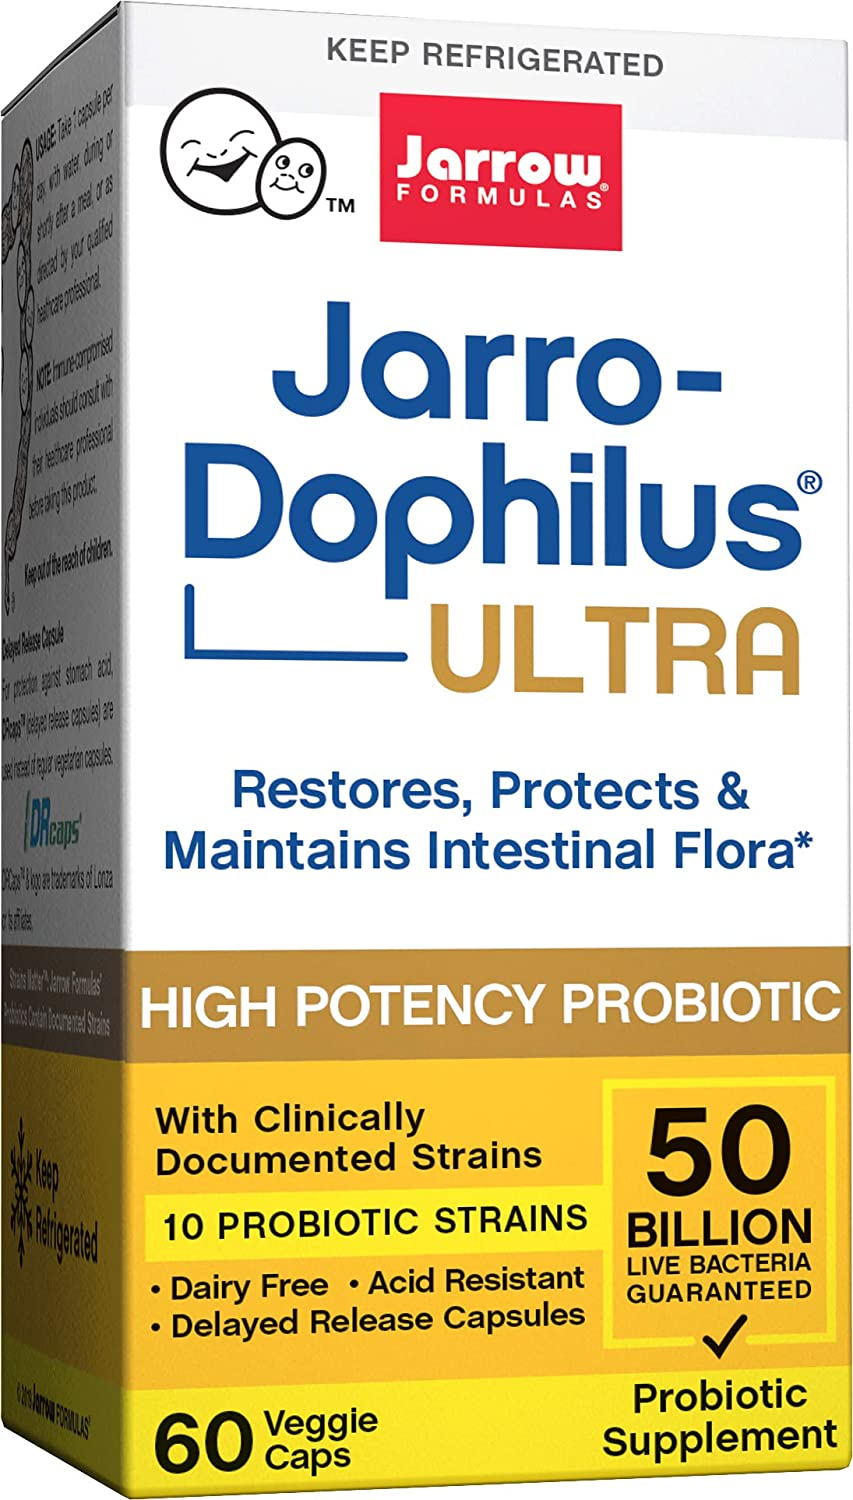 Ultra Jarro-Dophilus, 50 Billion Probiotic Organisms Per Capsule, for Intestinal/Digestive Health, 60 Veggie Caps (Cool Ship, Pack of 3)